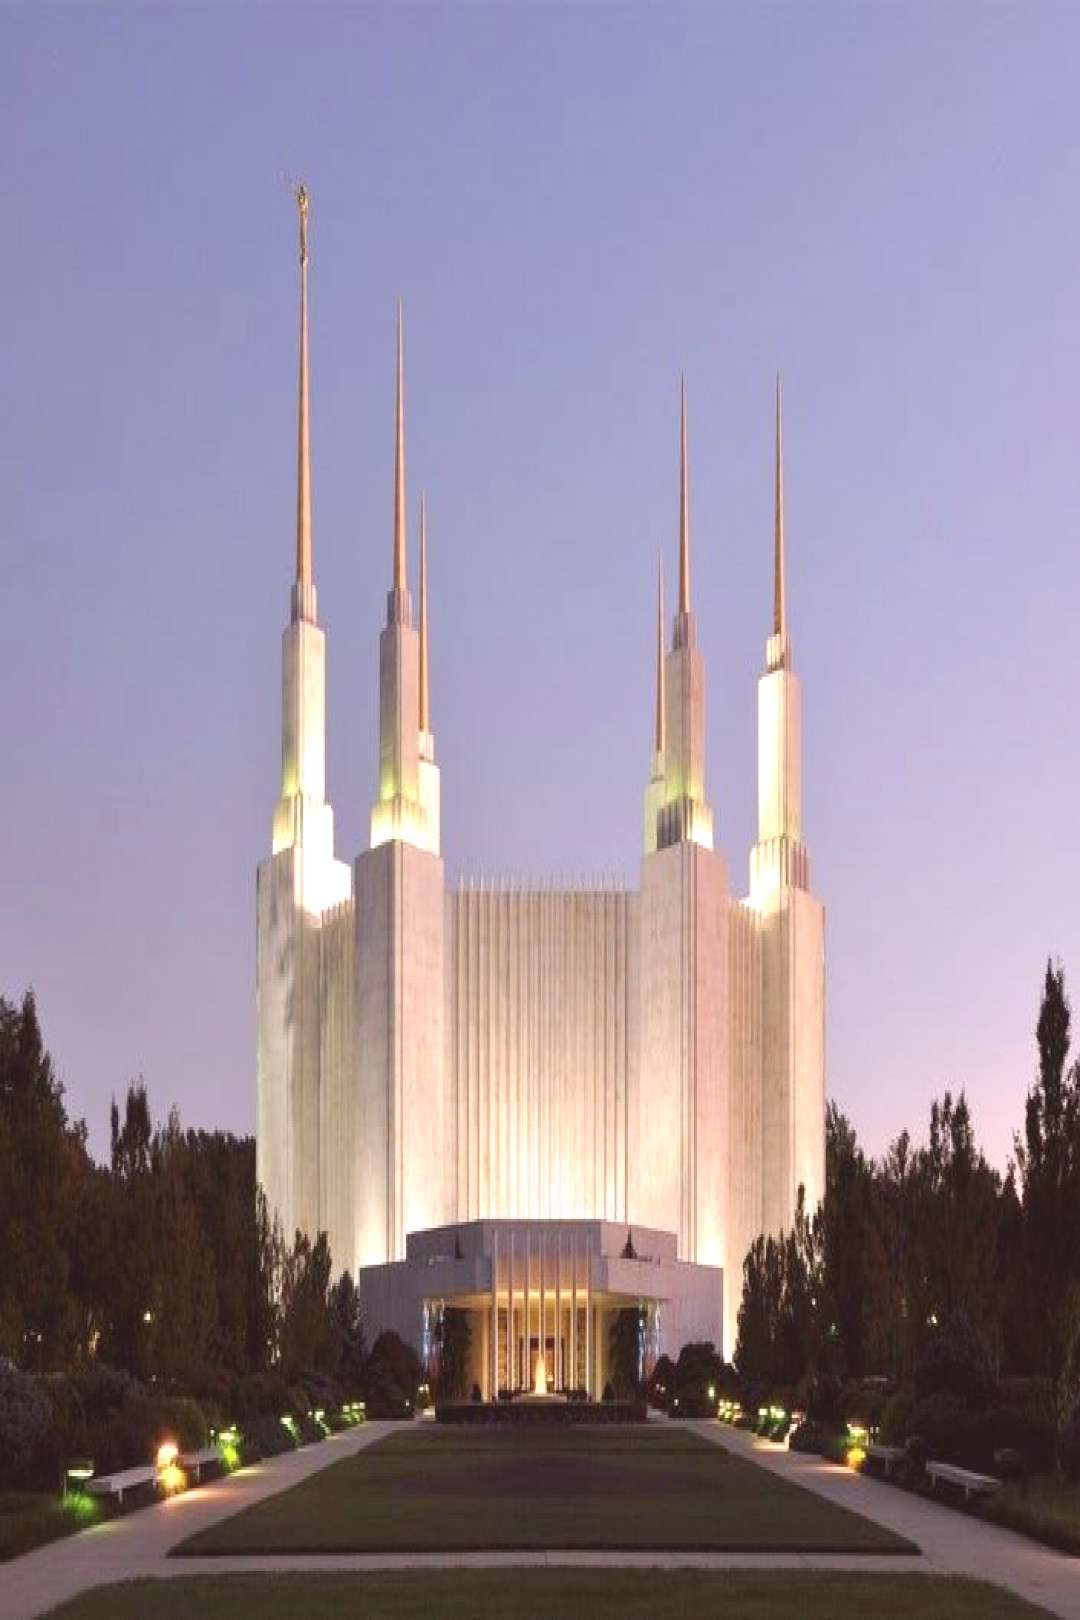 Once-In-A-Lifetime Opportunity Mormon Temple Opening To Public   Kensington, MD Patch